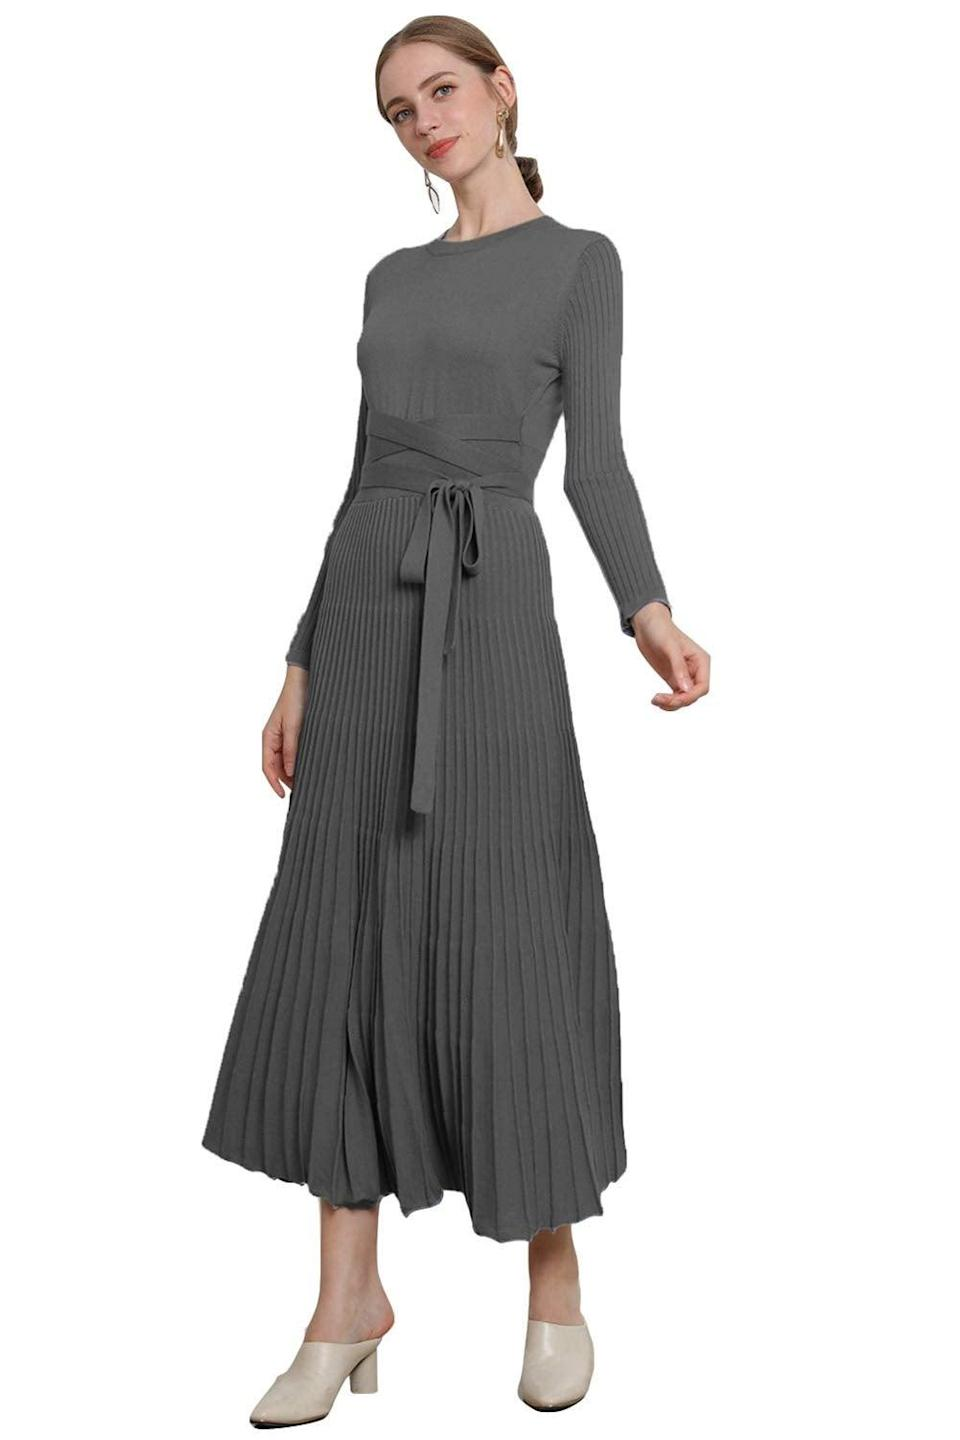 "<br><br><strong>RanRui</strong> Cashmere Pleated Sweater Dress, $, available at <a href=""https://amzn.to/370SqPO"" rel=""nofollow noopener"" target=""_blank"" data-ylk=""slk:Amazon"" class=""link rapid-noclick-resp"">Amazon</a>"